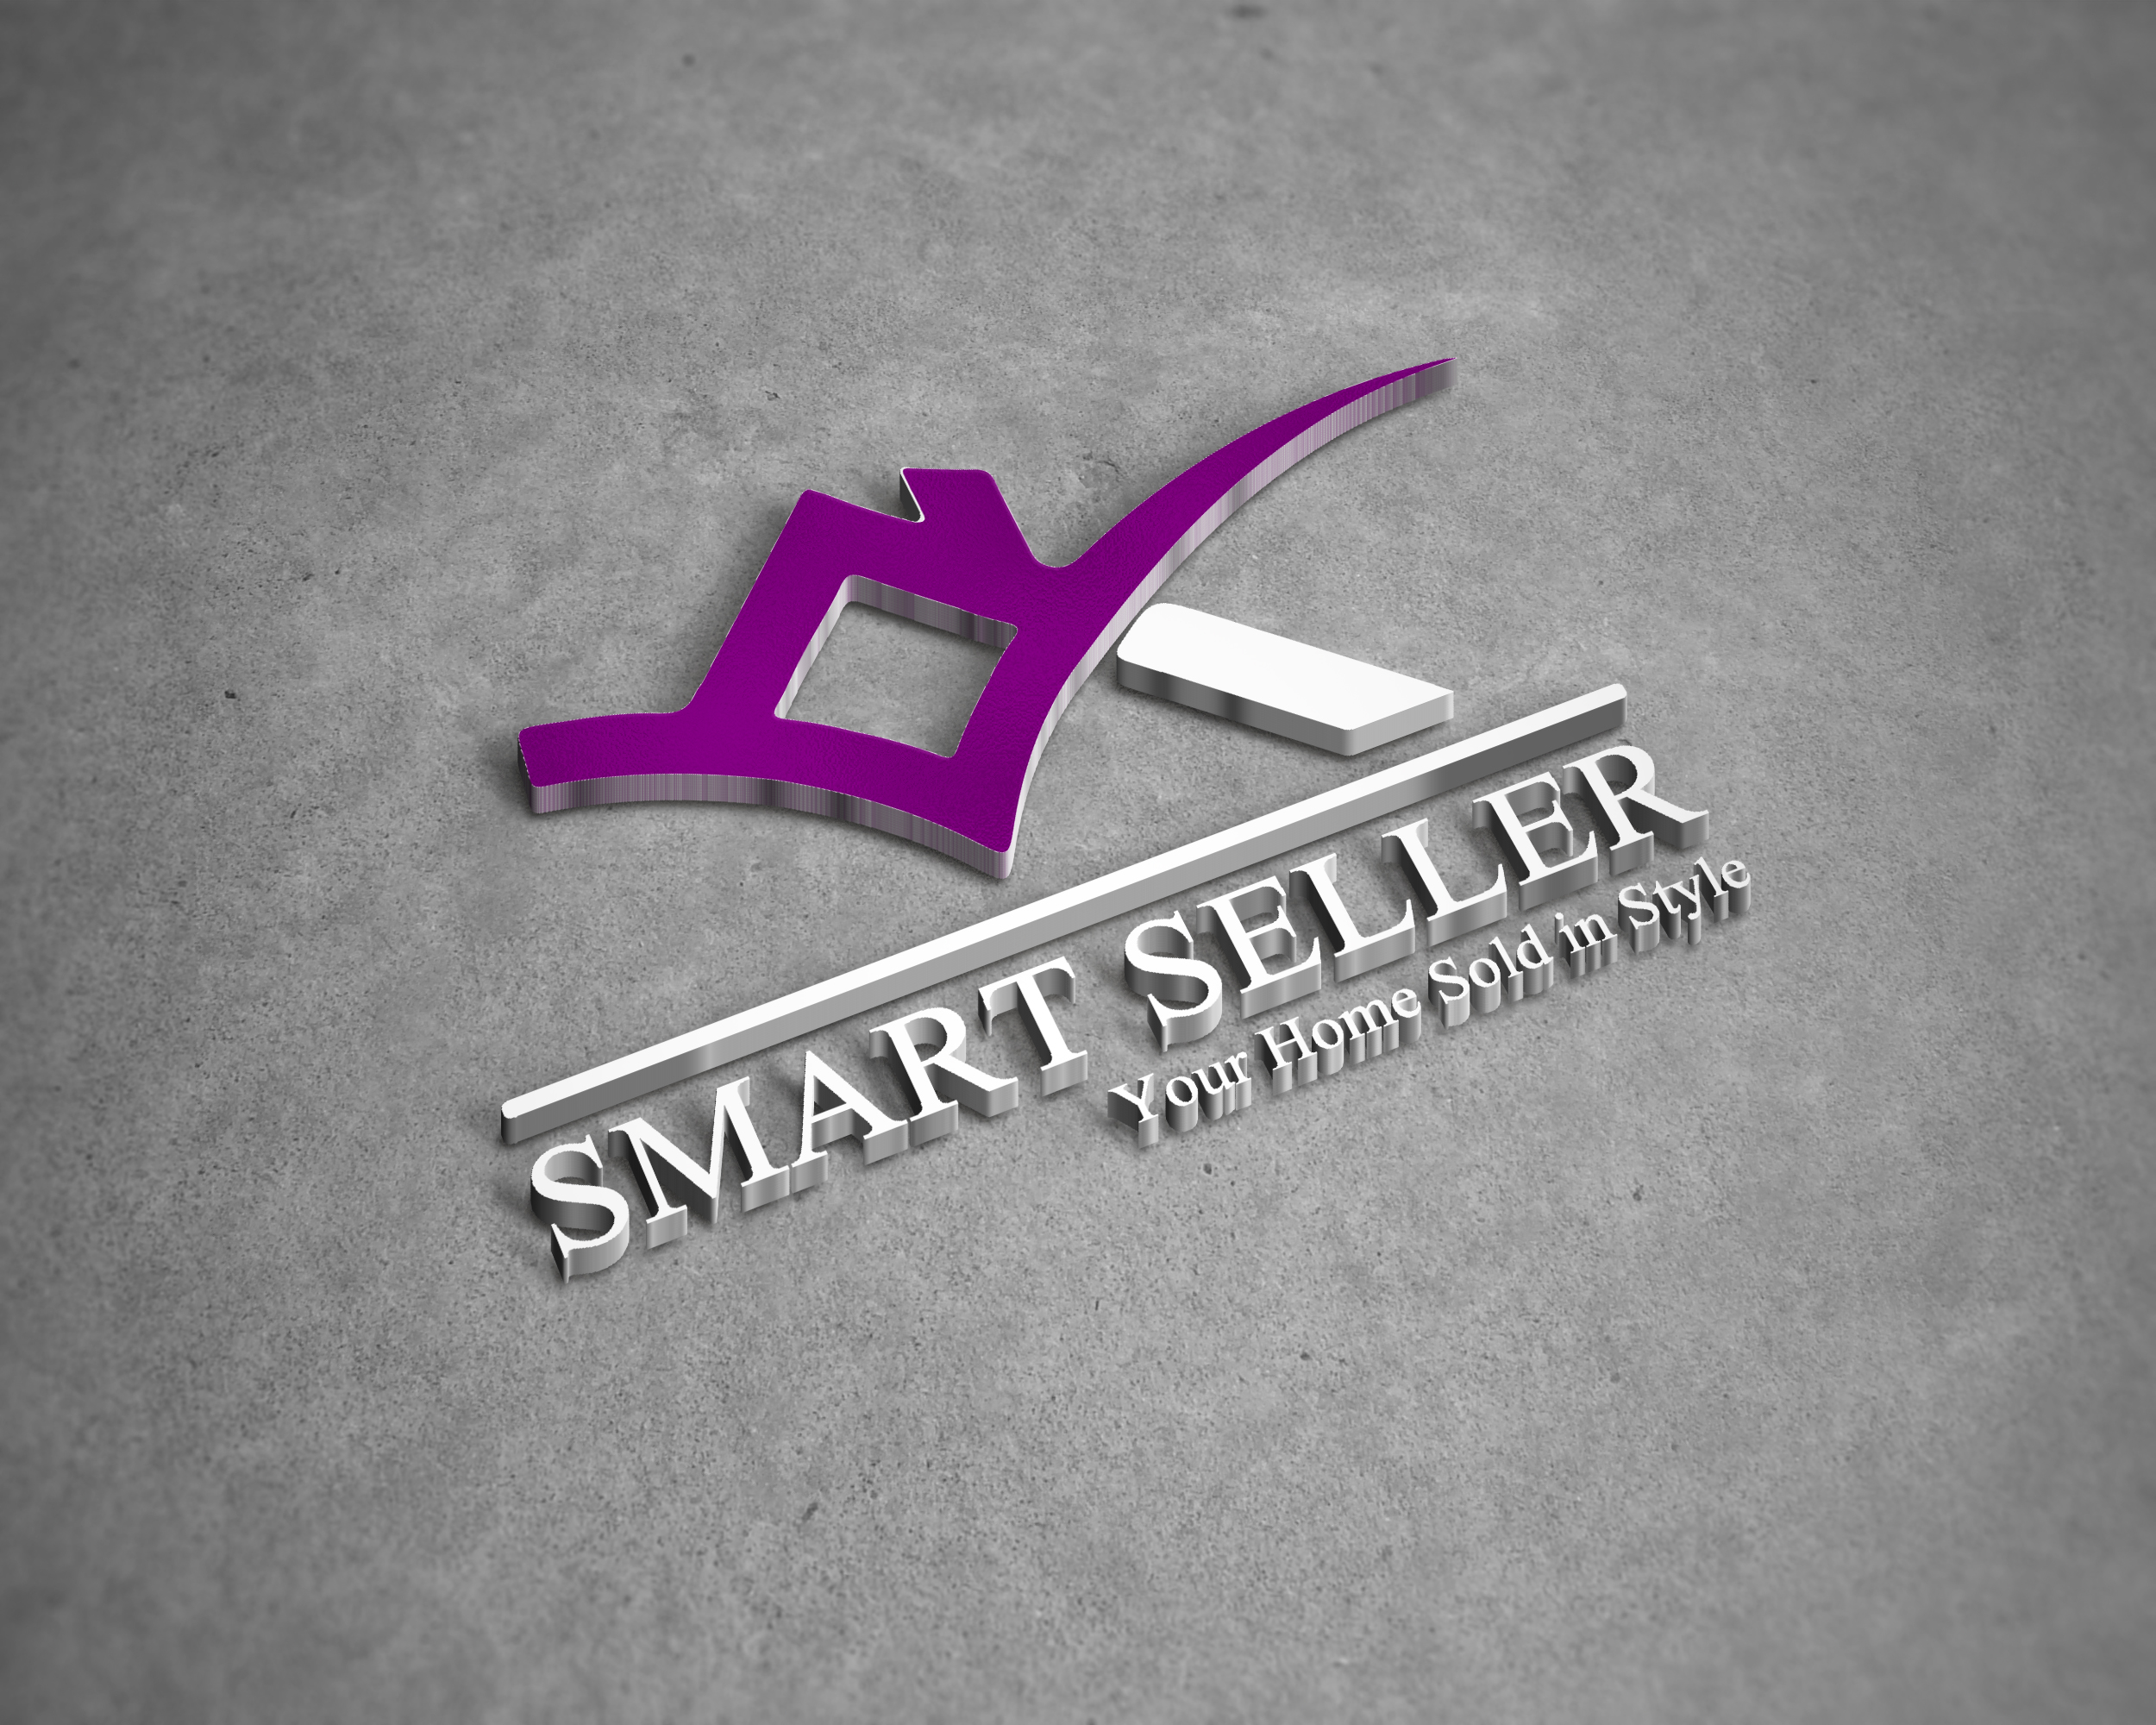 Design 2 professional logo for your business and website